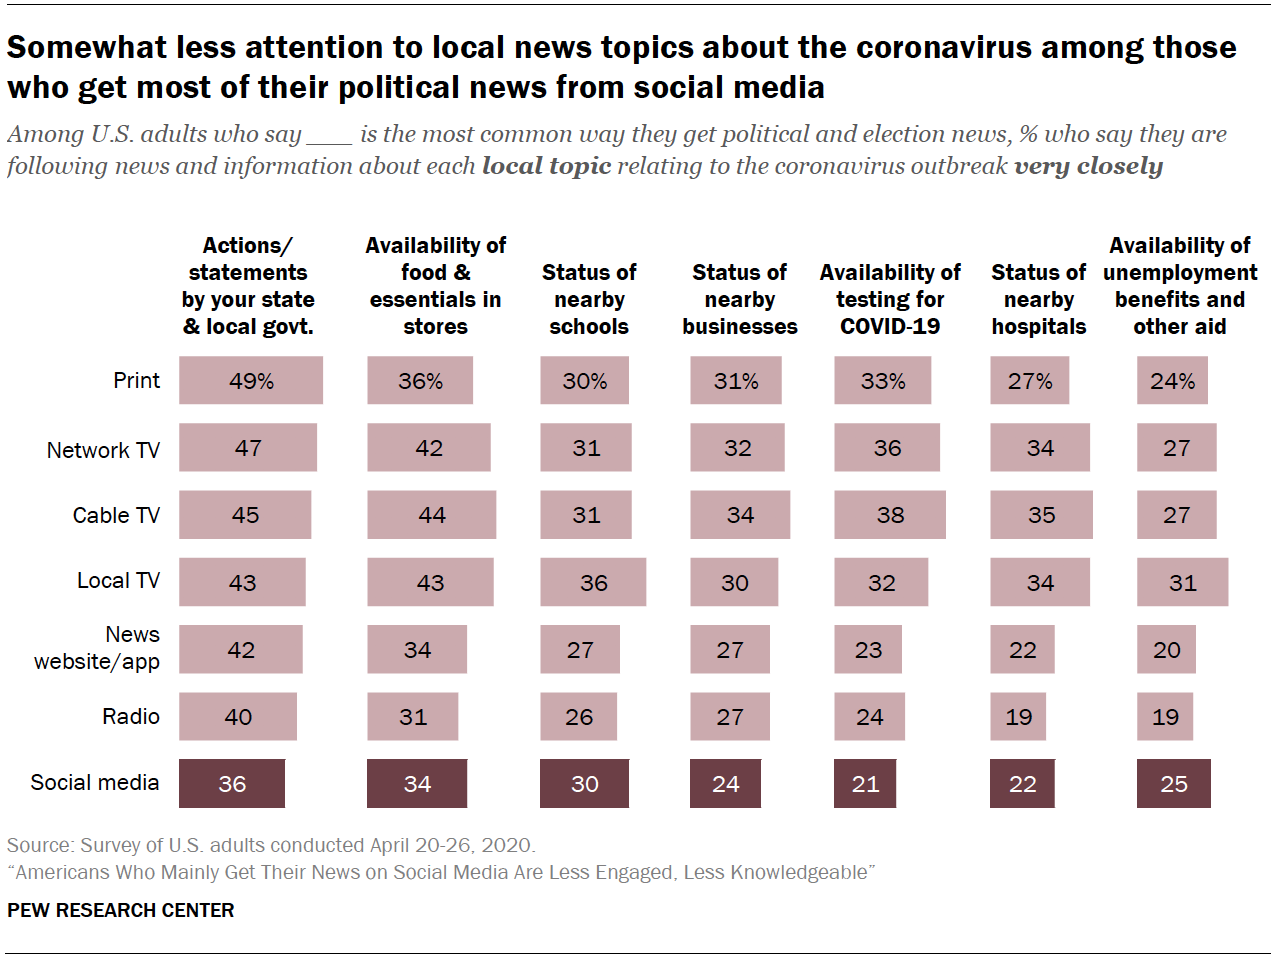 Chart shows somewhat less attention to local news topics about the coronavirus among those who get most of their political news from social media